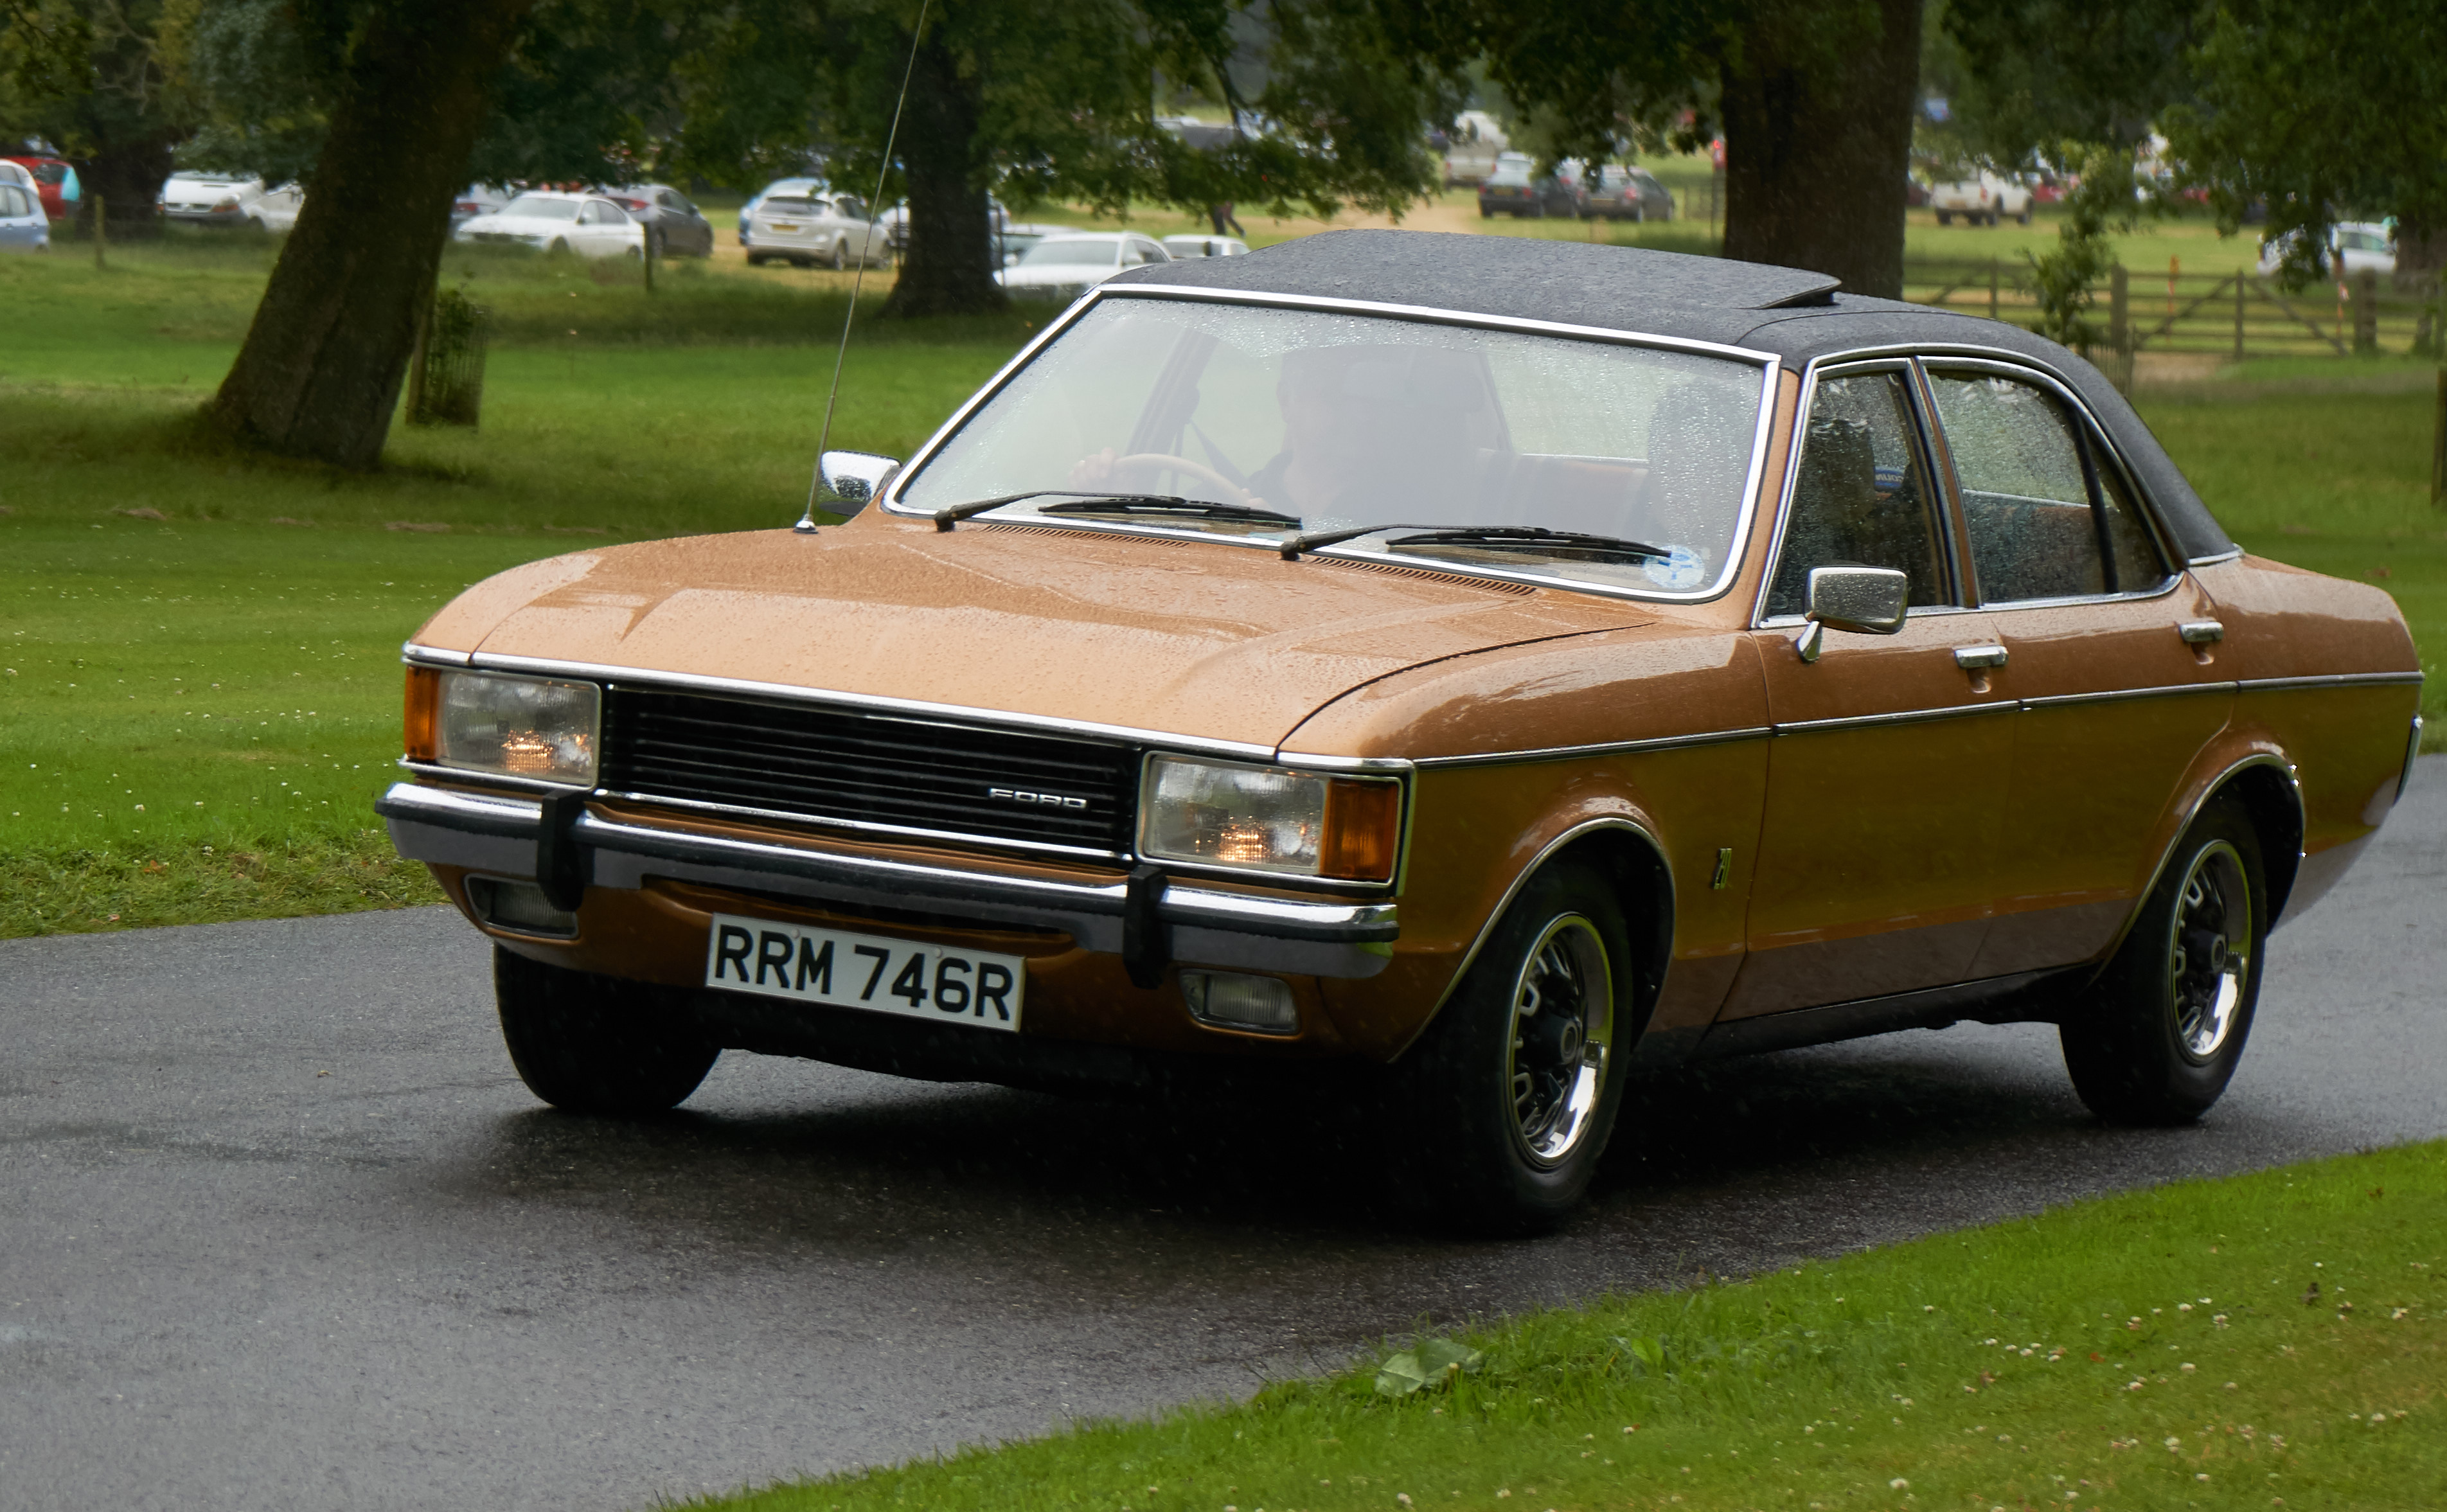 1977 Ford Granada, Car, Grass, Road, Tree, HQ Photo